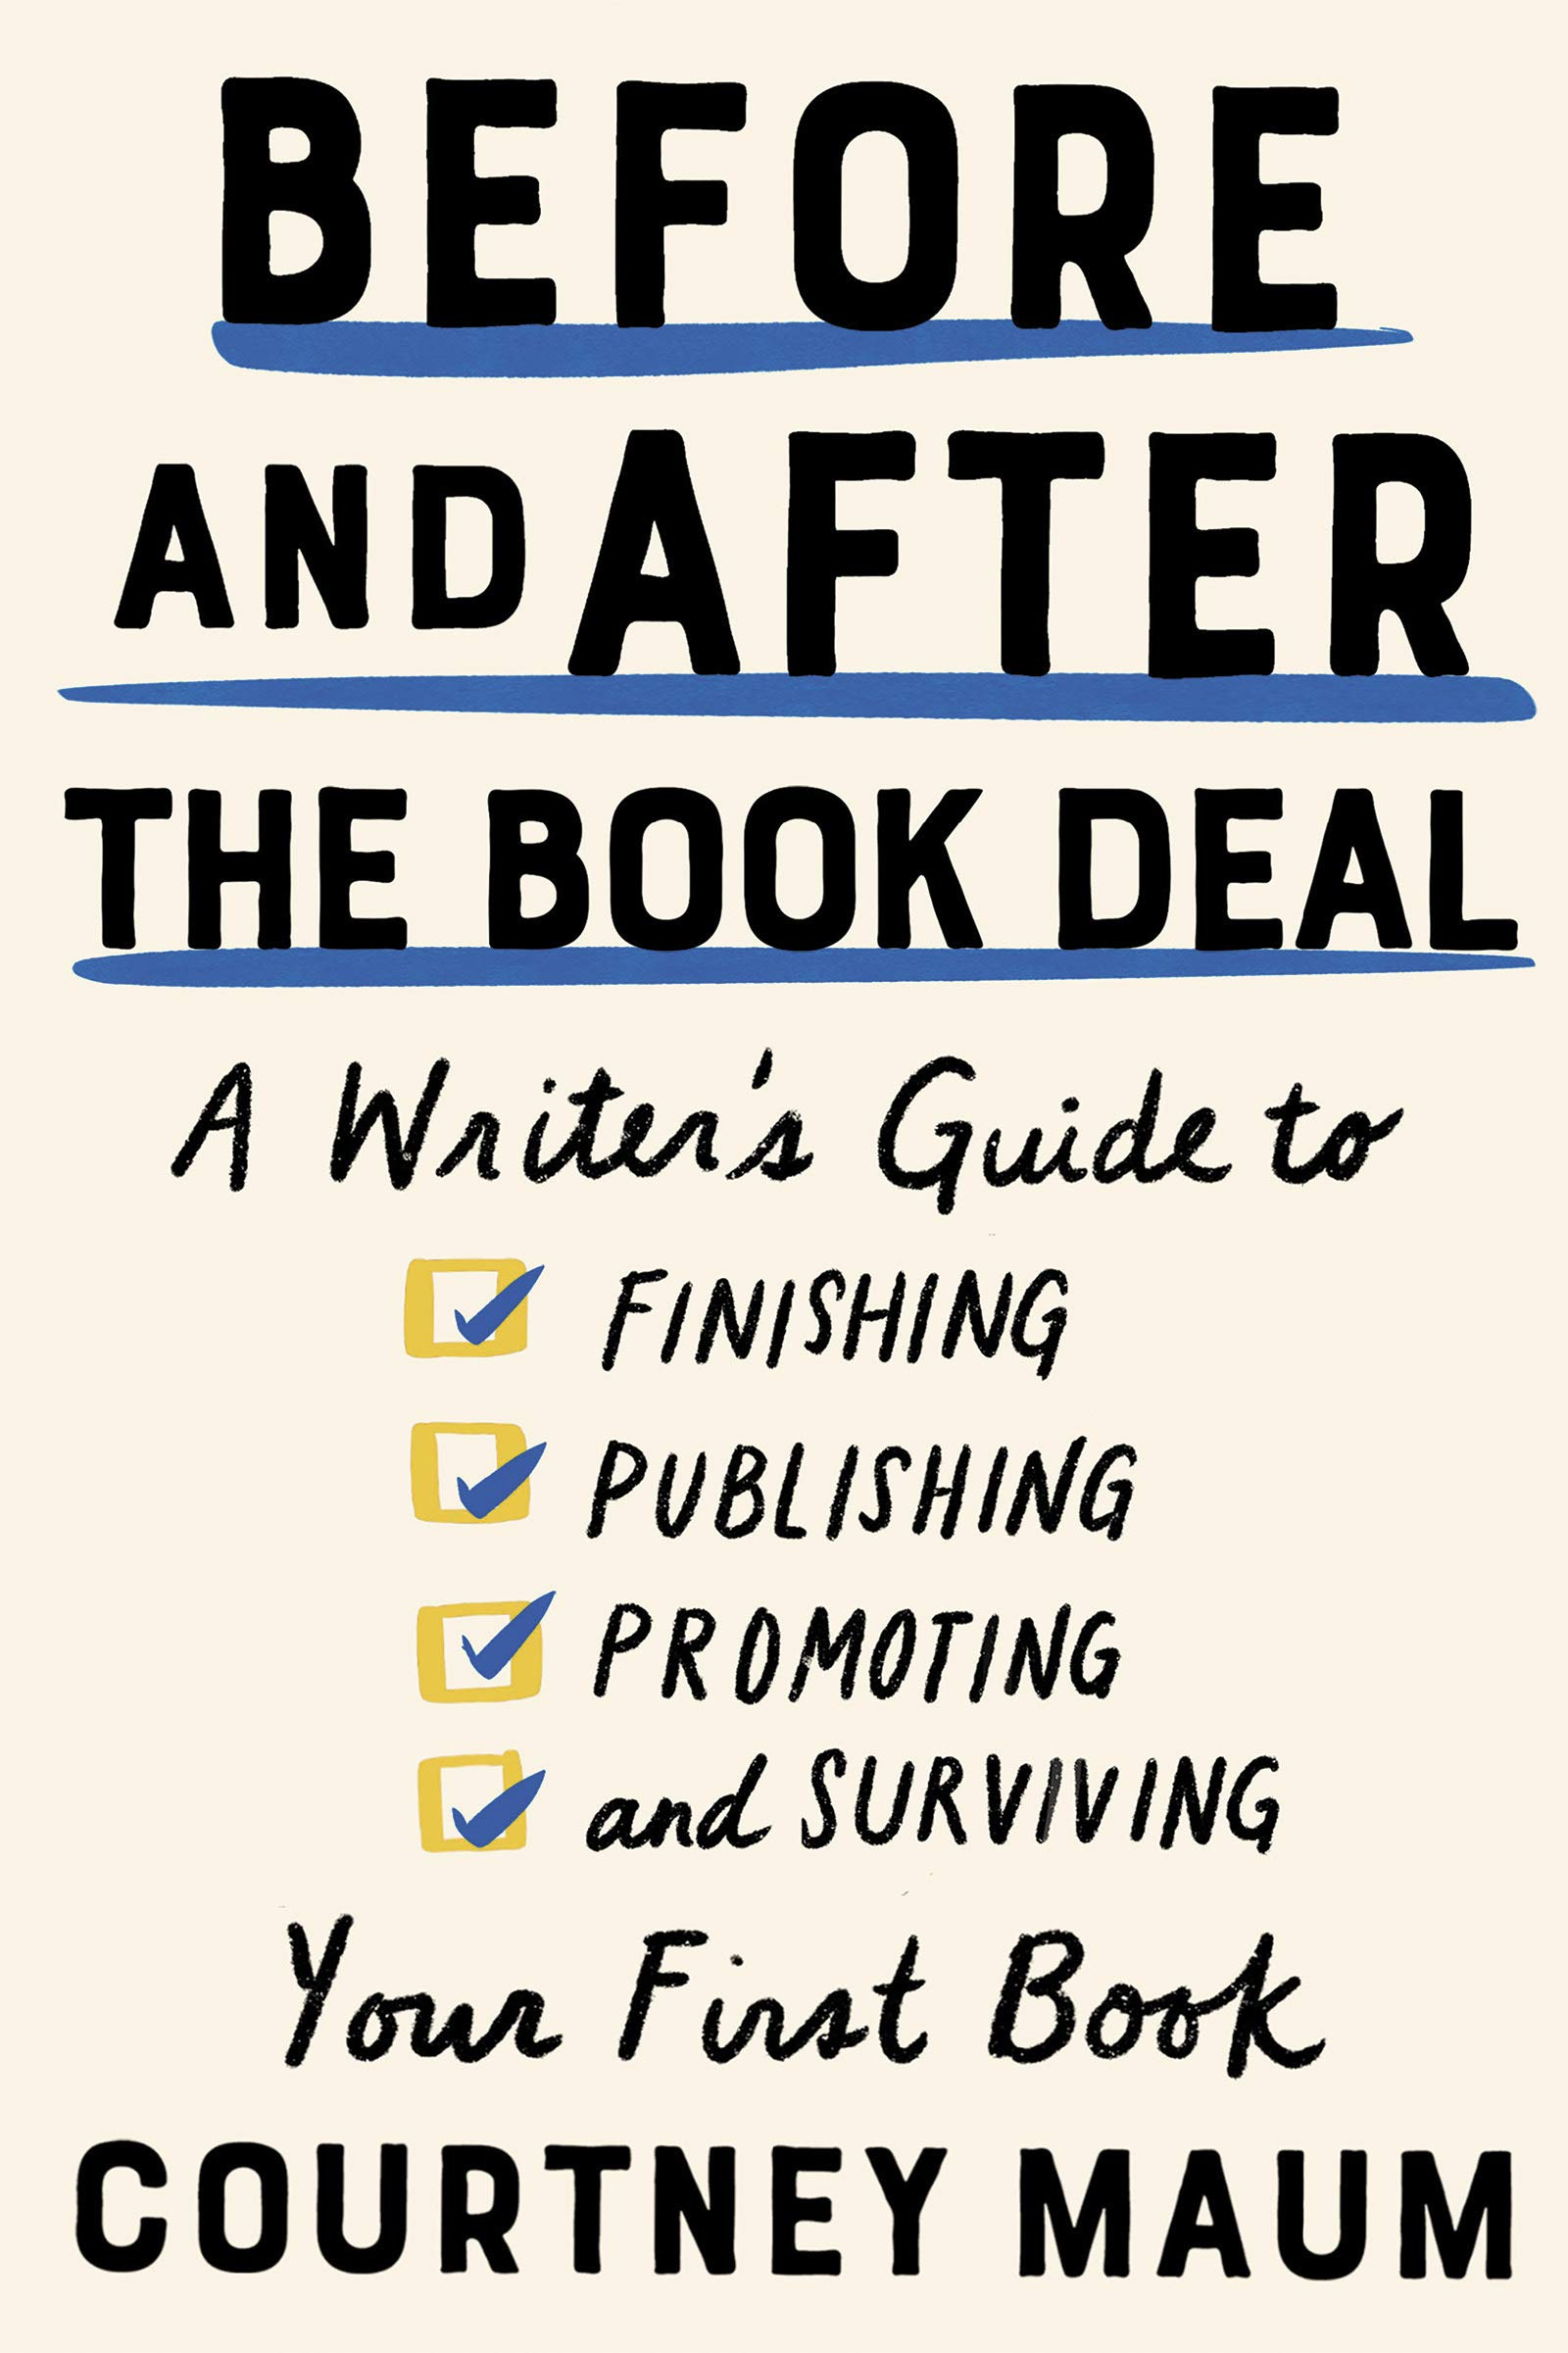 Before and After the Book Deal: A writer's guide to finishing, publishing, promoting and surviving your first book